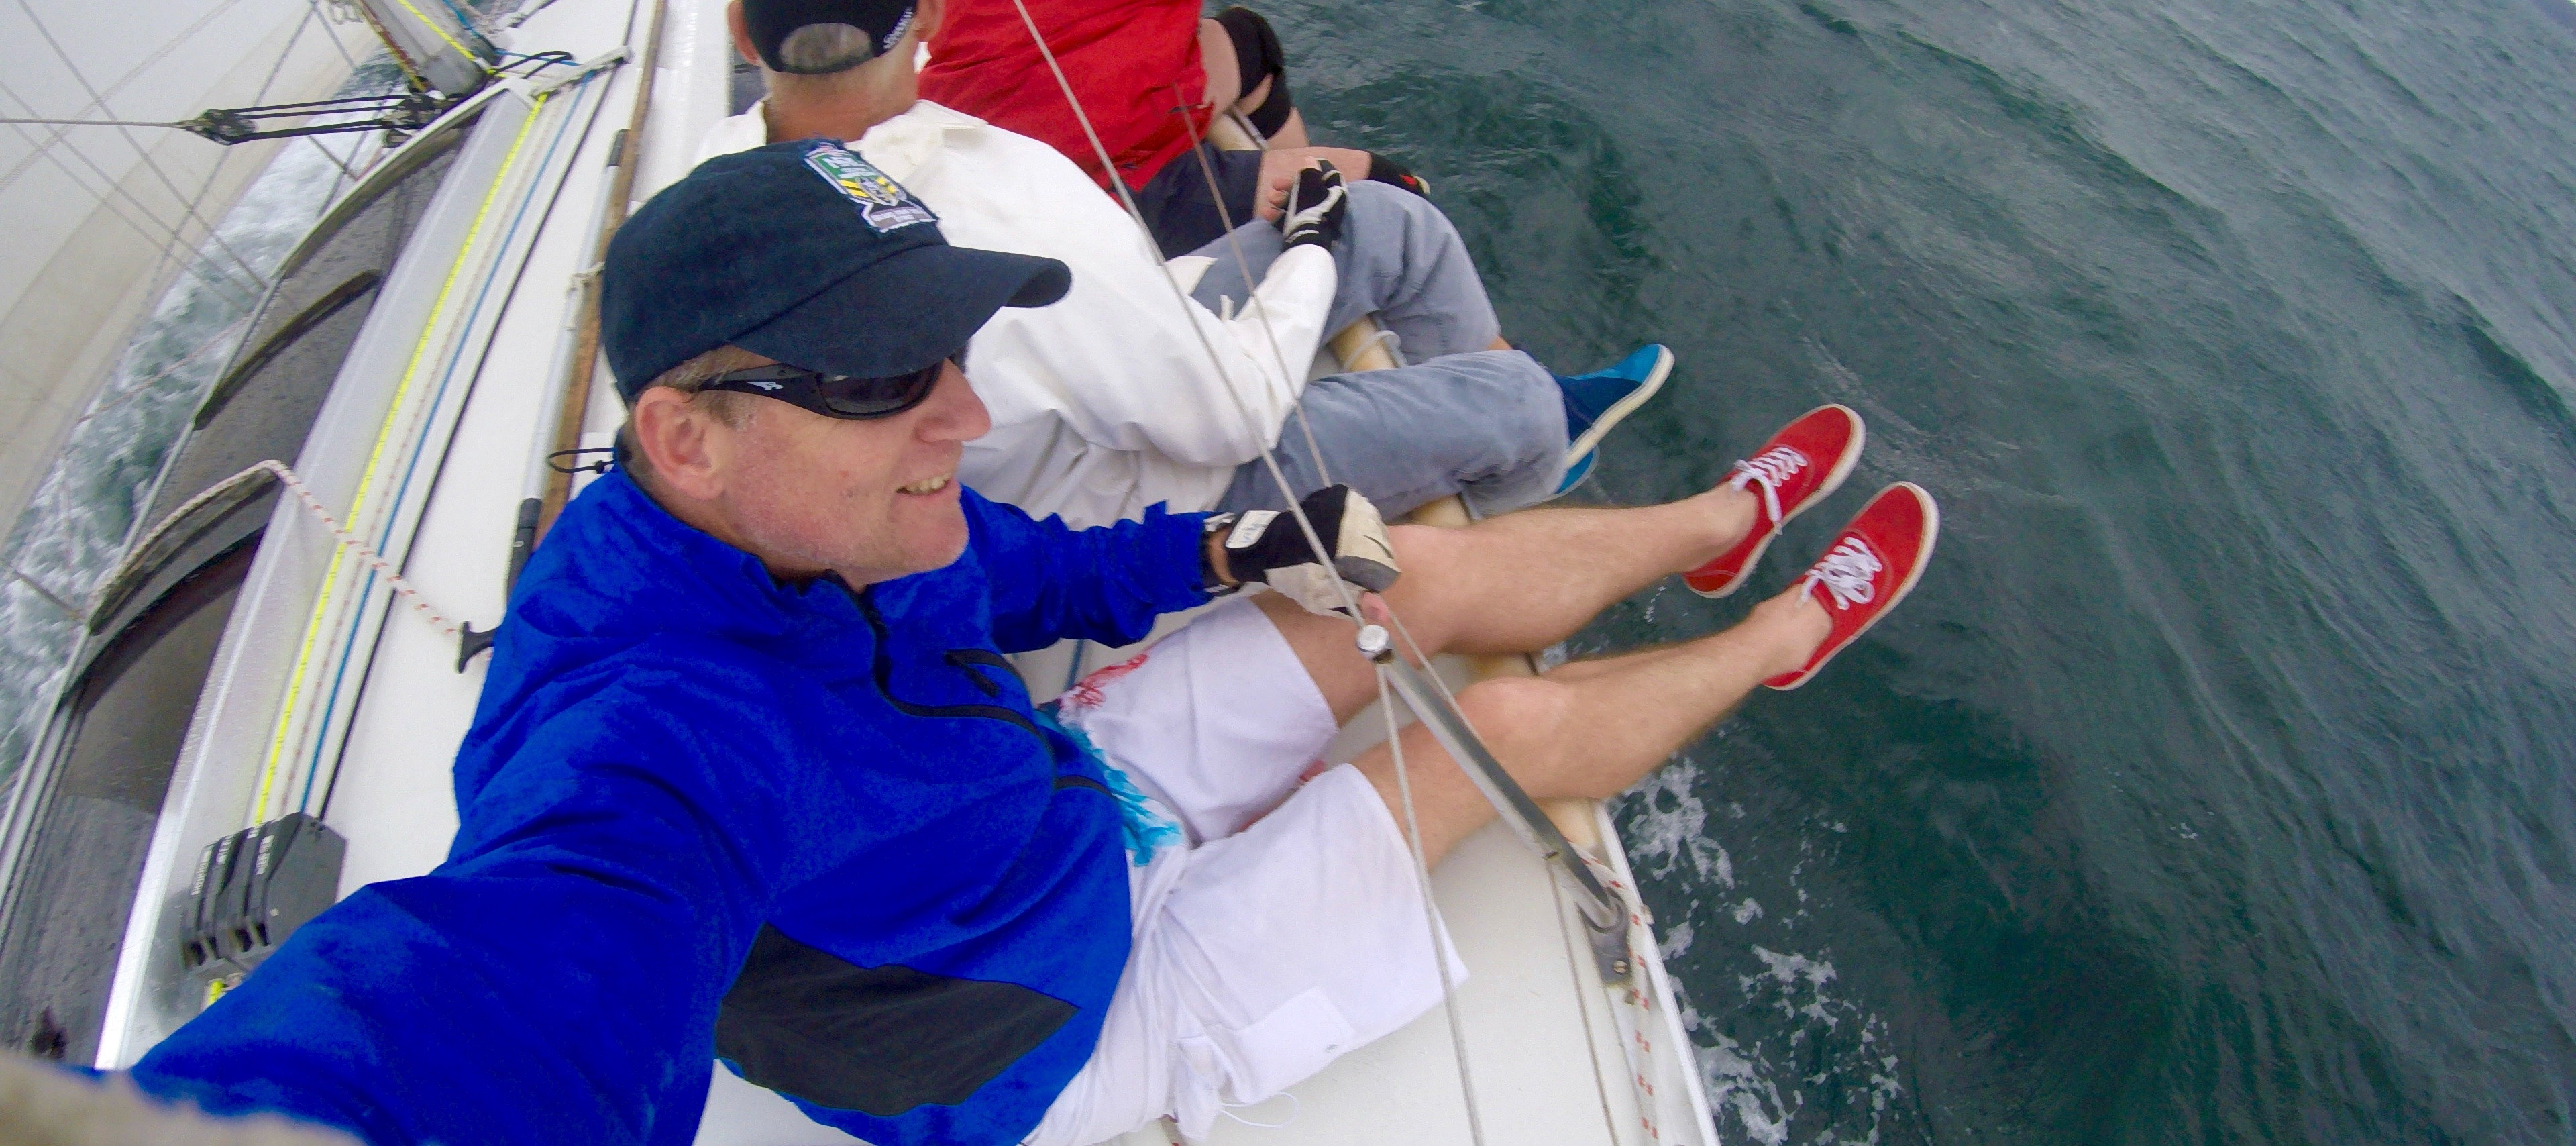 Sailing in Pittwater NSW on Kama 3